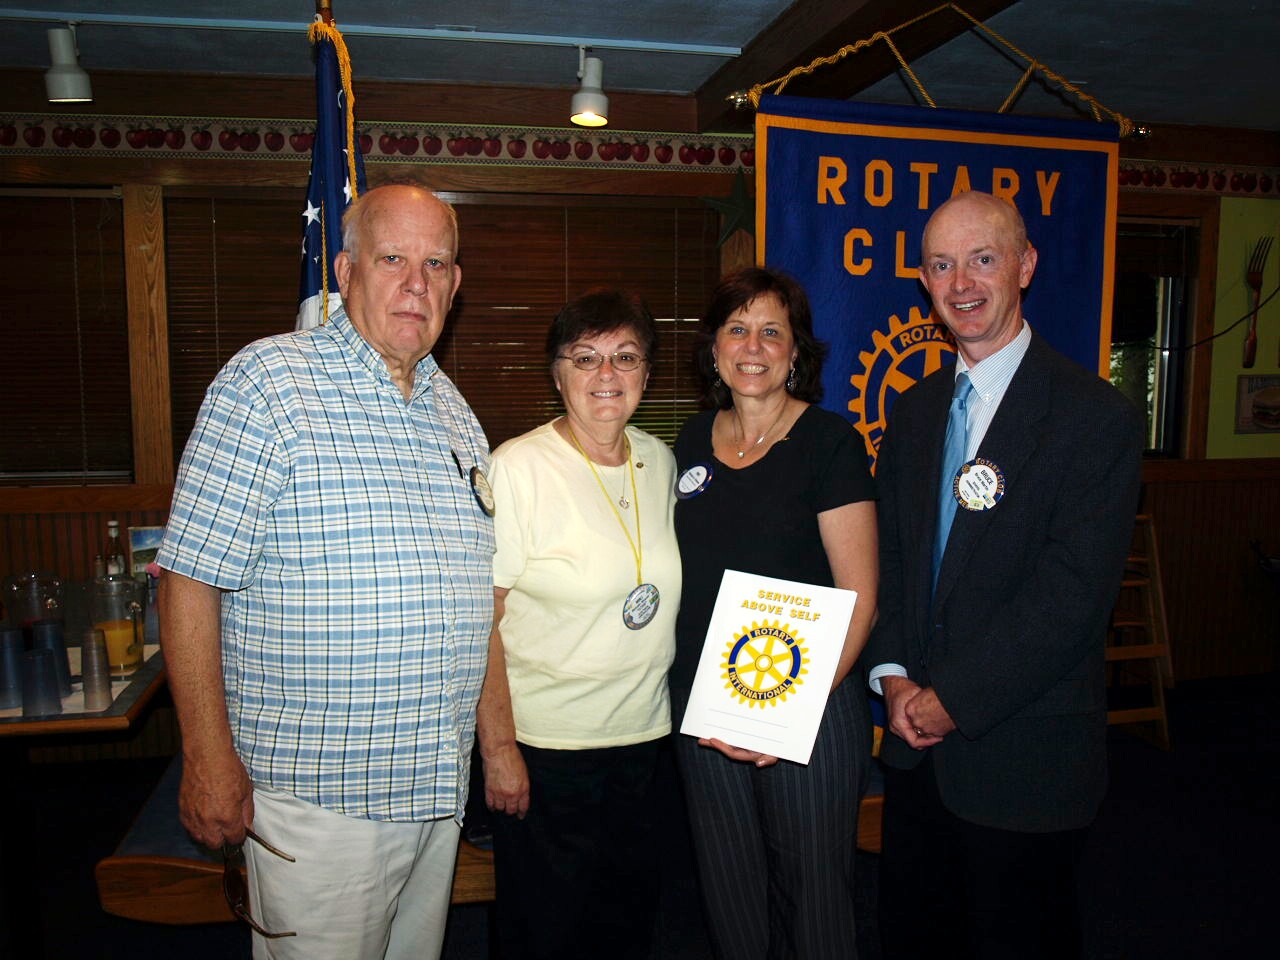 Pat Pennisi joins Rotary